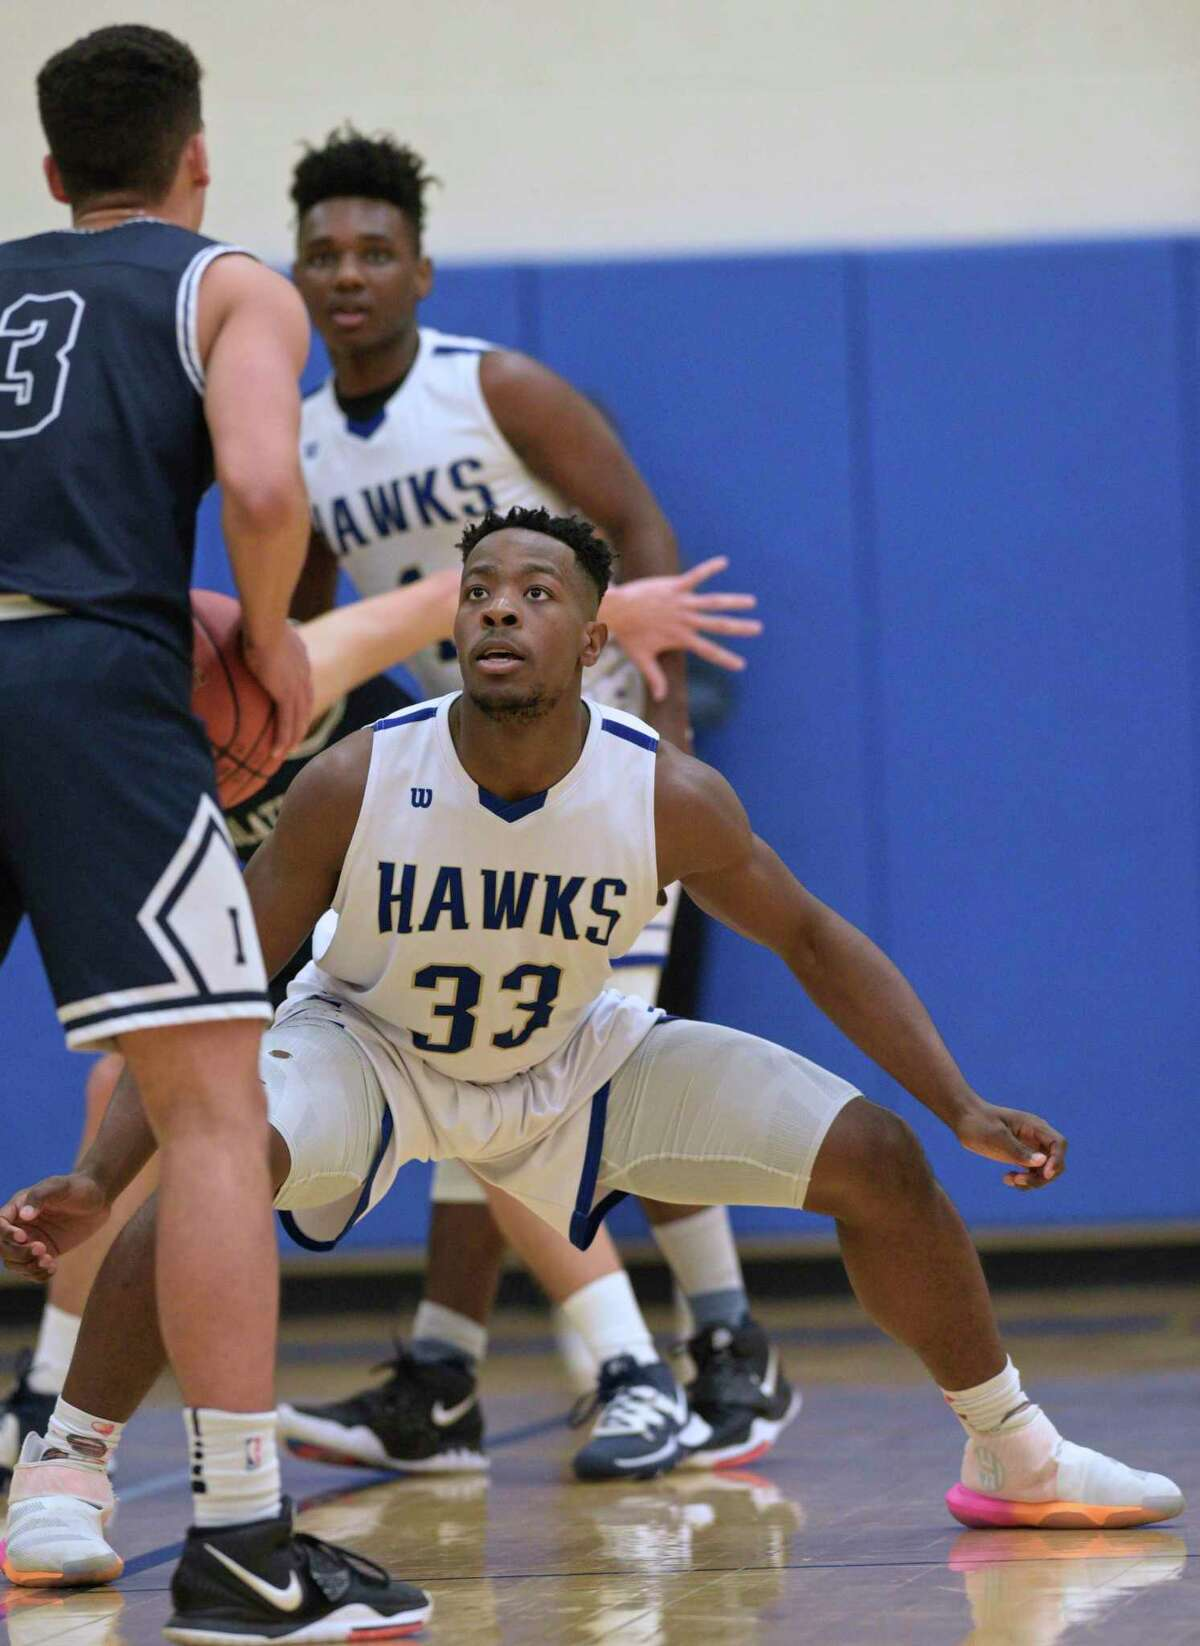 Newtown's Isaiah Williams (33) defends Immaculate's Diego Echavarria (3) in the boys basketball game between Immaculate and Newtown high schools, Tuesday night, February 4, 2020, at Newtown High School, in Newtown, Conn.